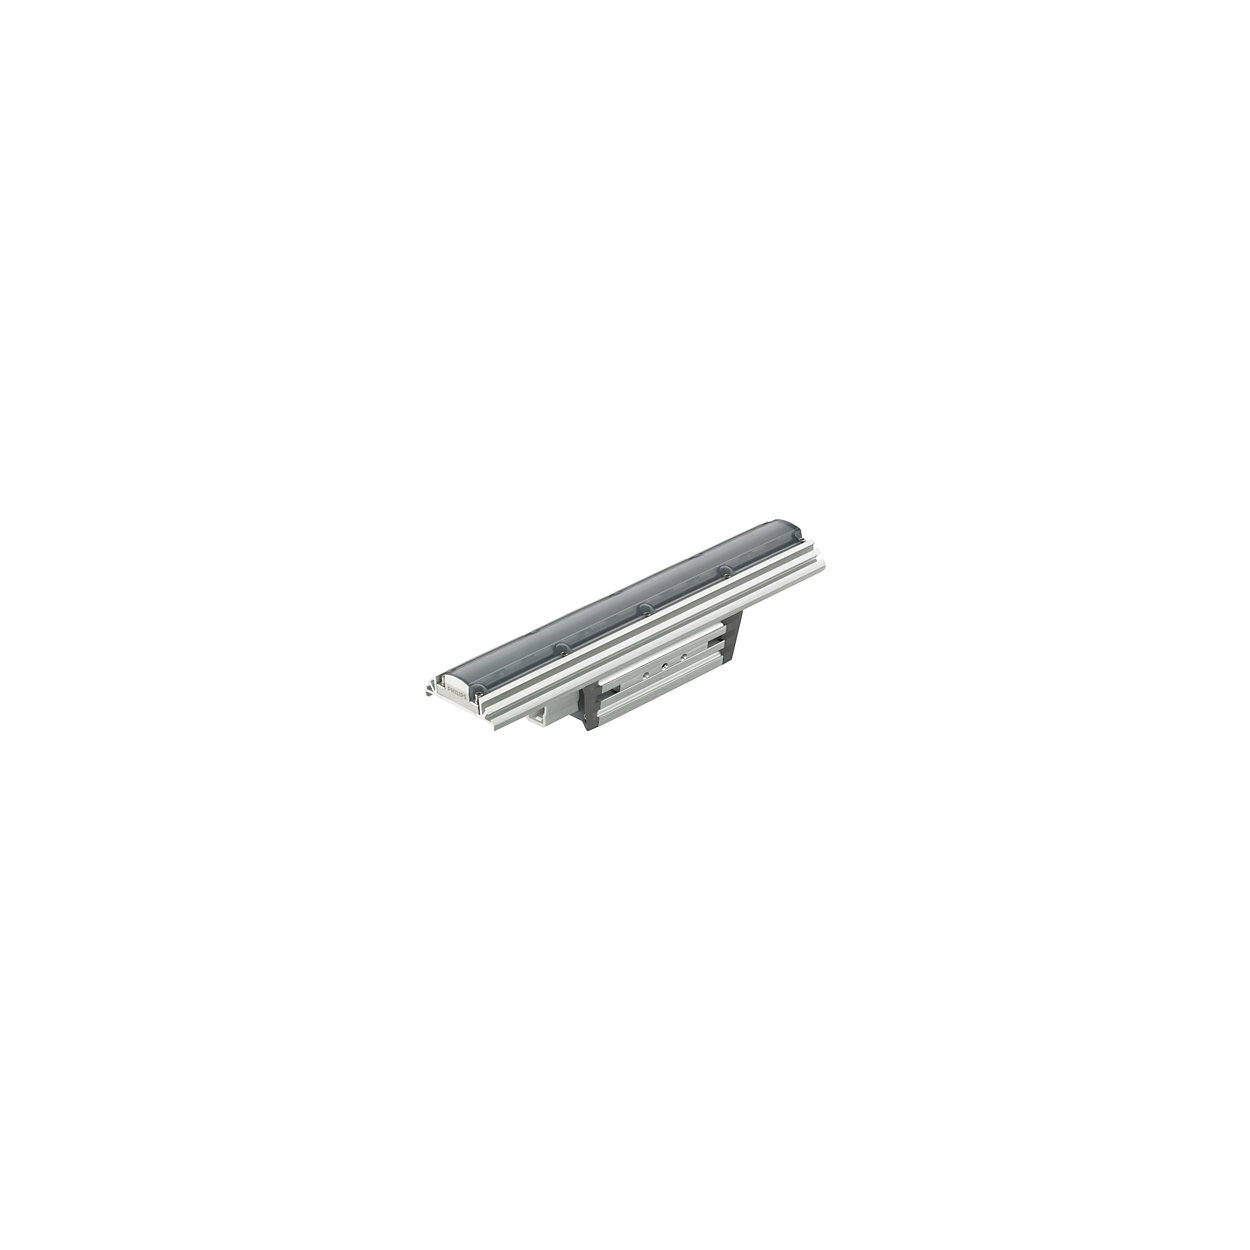 eW Graze EC Powercore – Cost-effective linear exterior LED wall grazing luminaire with solid white light